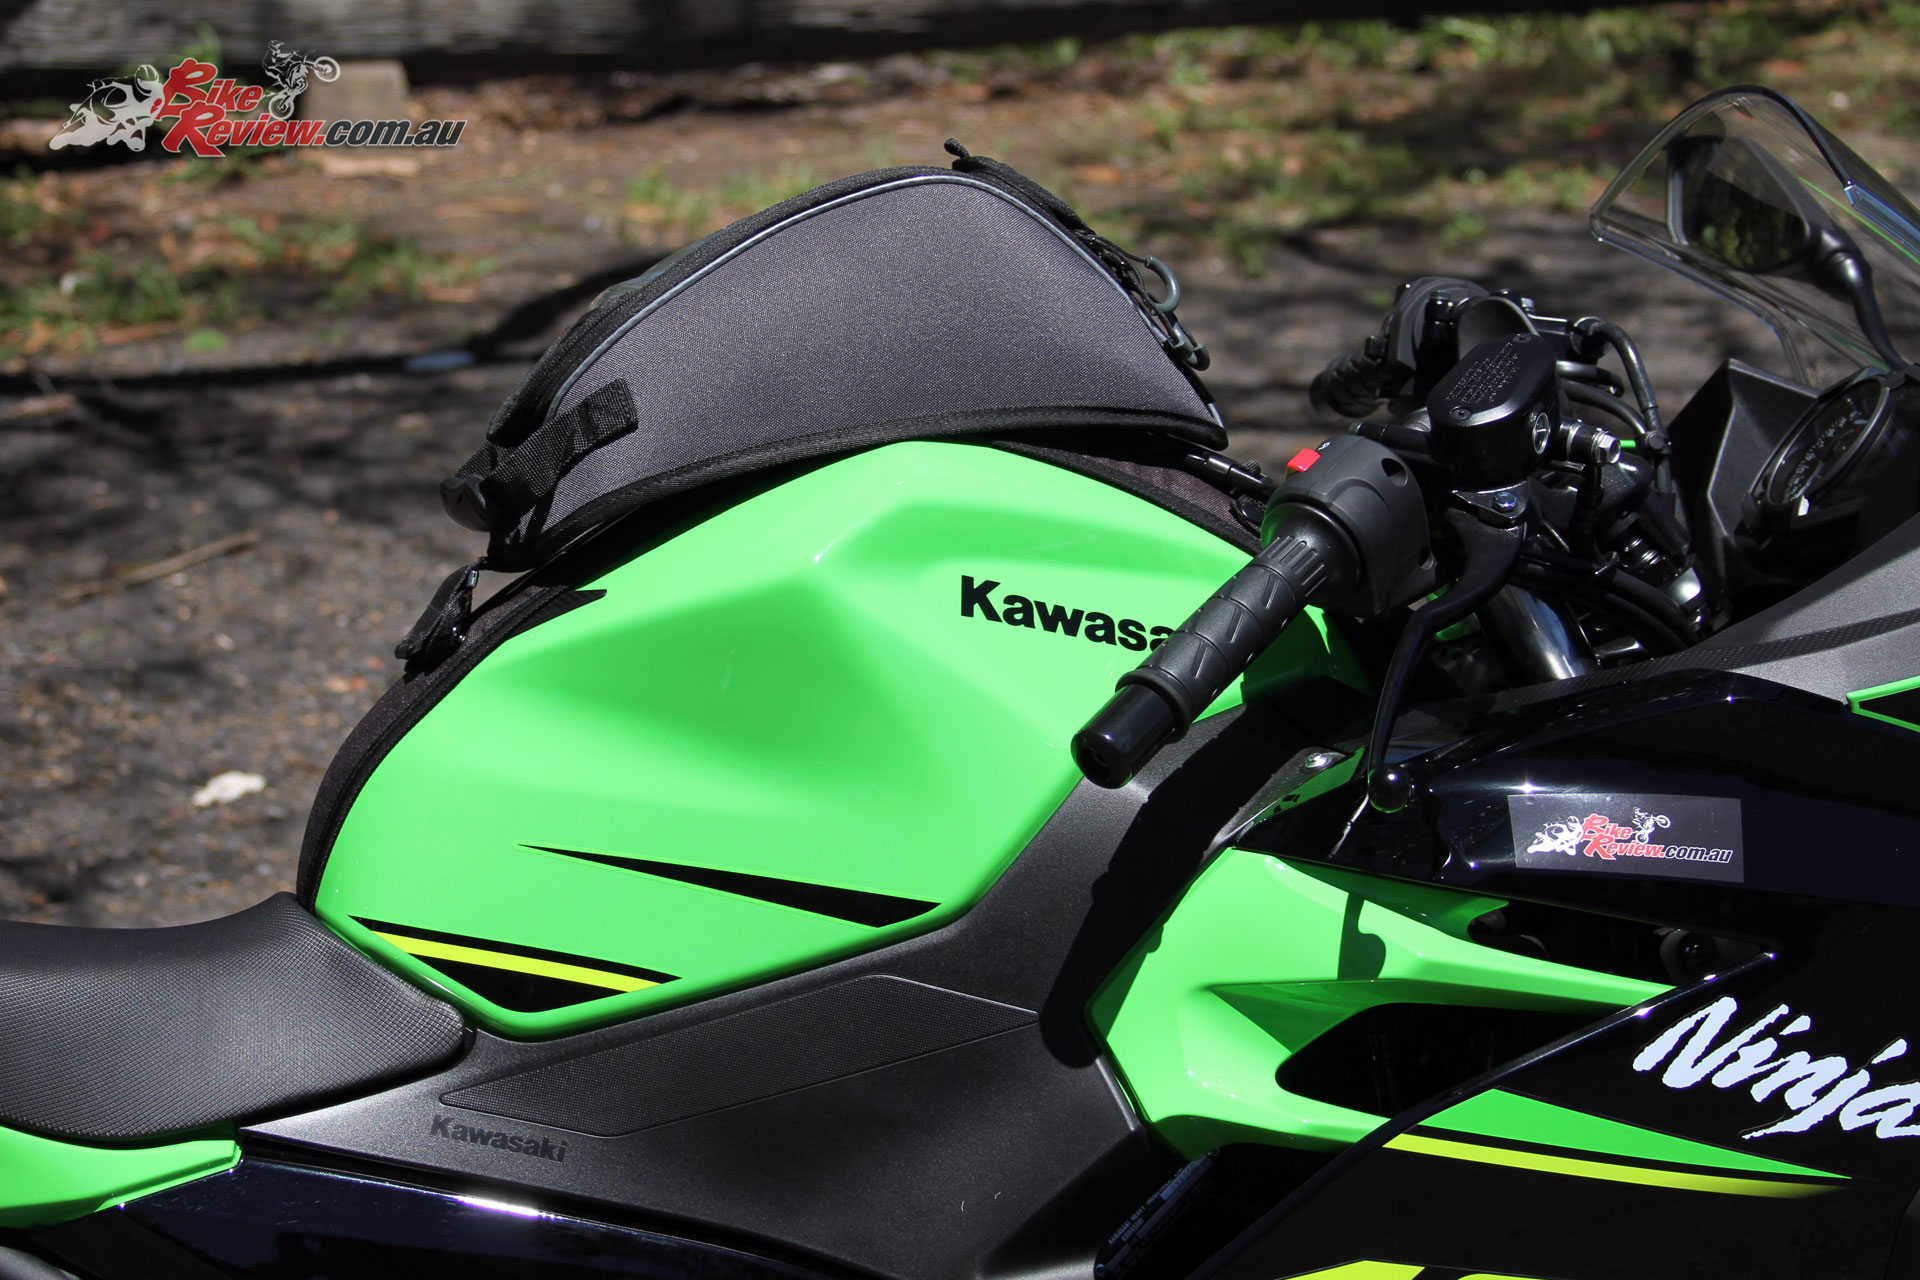 Kawasaki Genuine Tank Bag - Capacity is just 4L for a compact bag